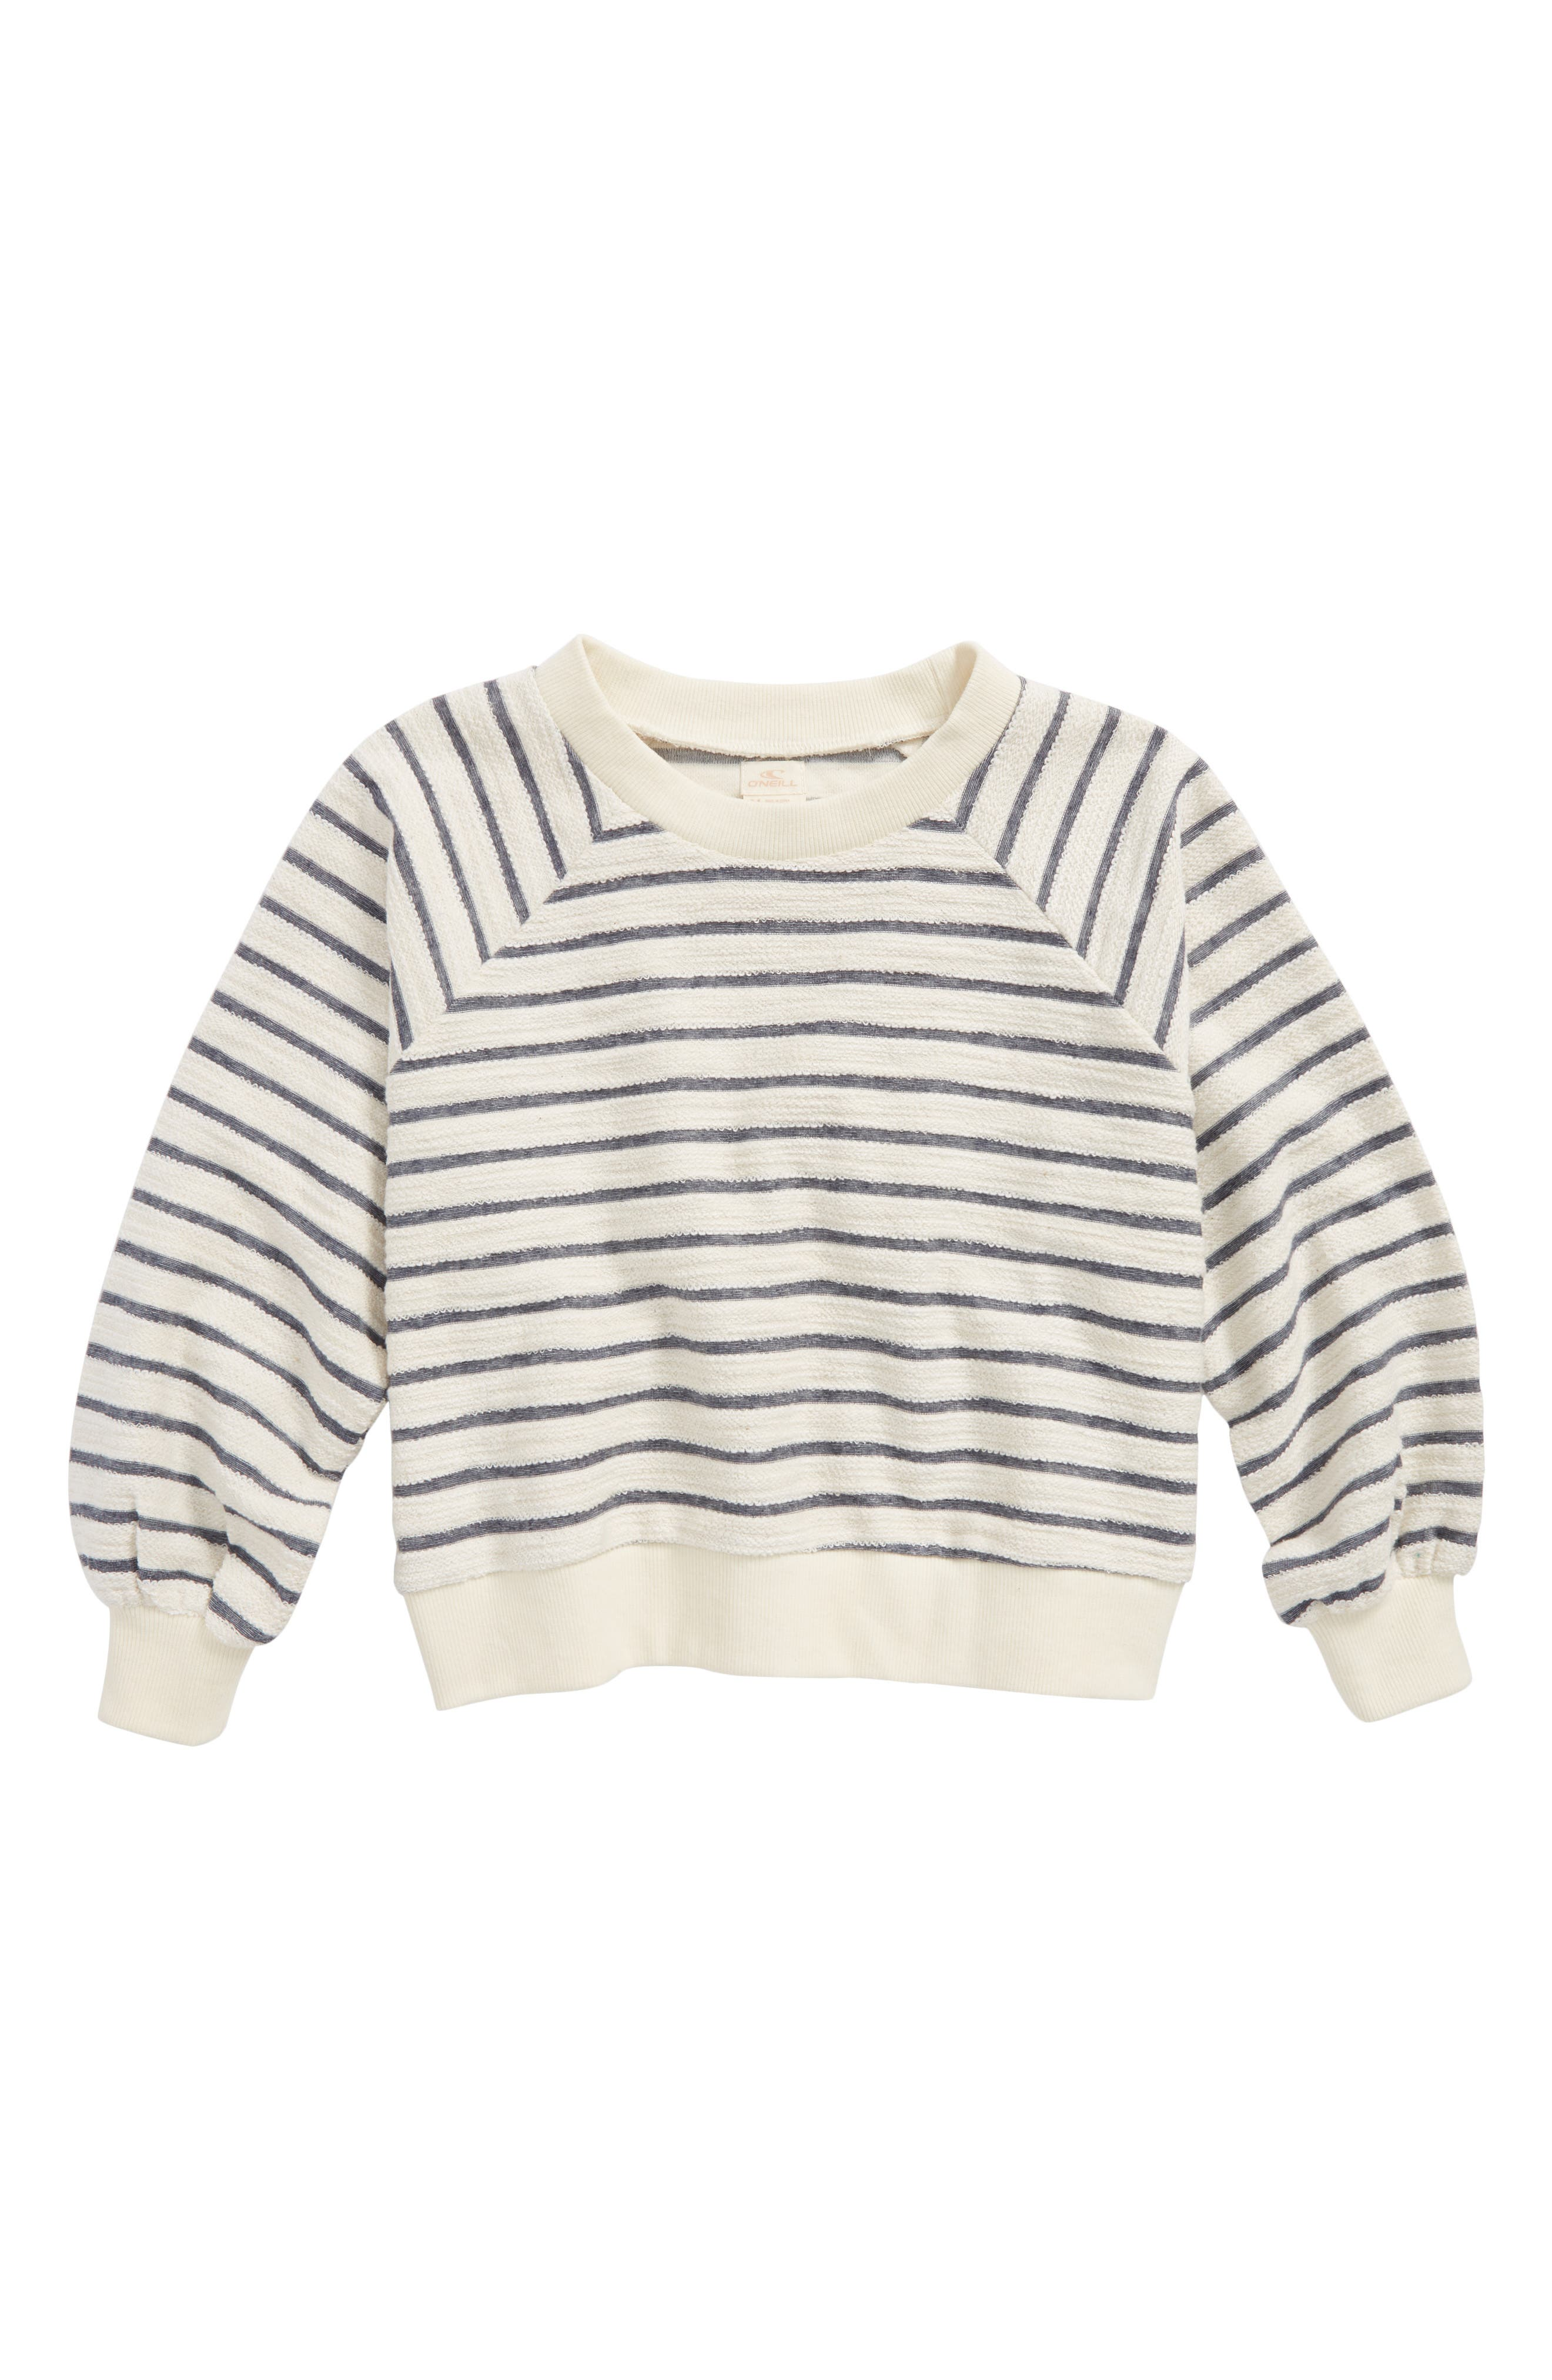 Sleep In Stripe Sweatshirt,                         Main,                         color, White/ Blk Stripe